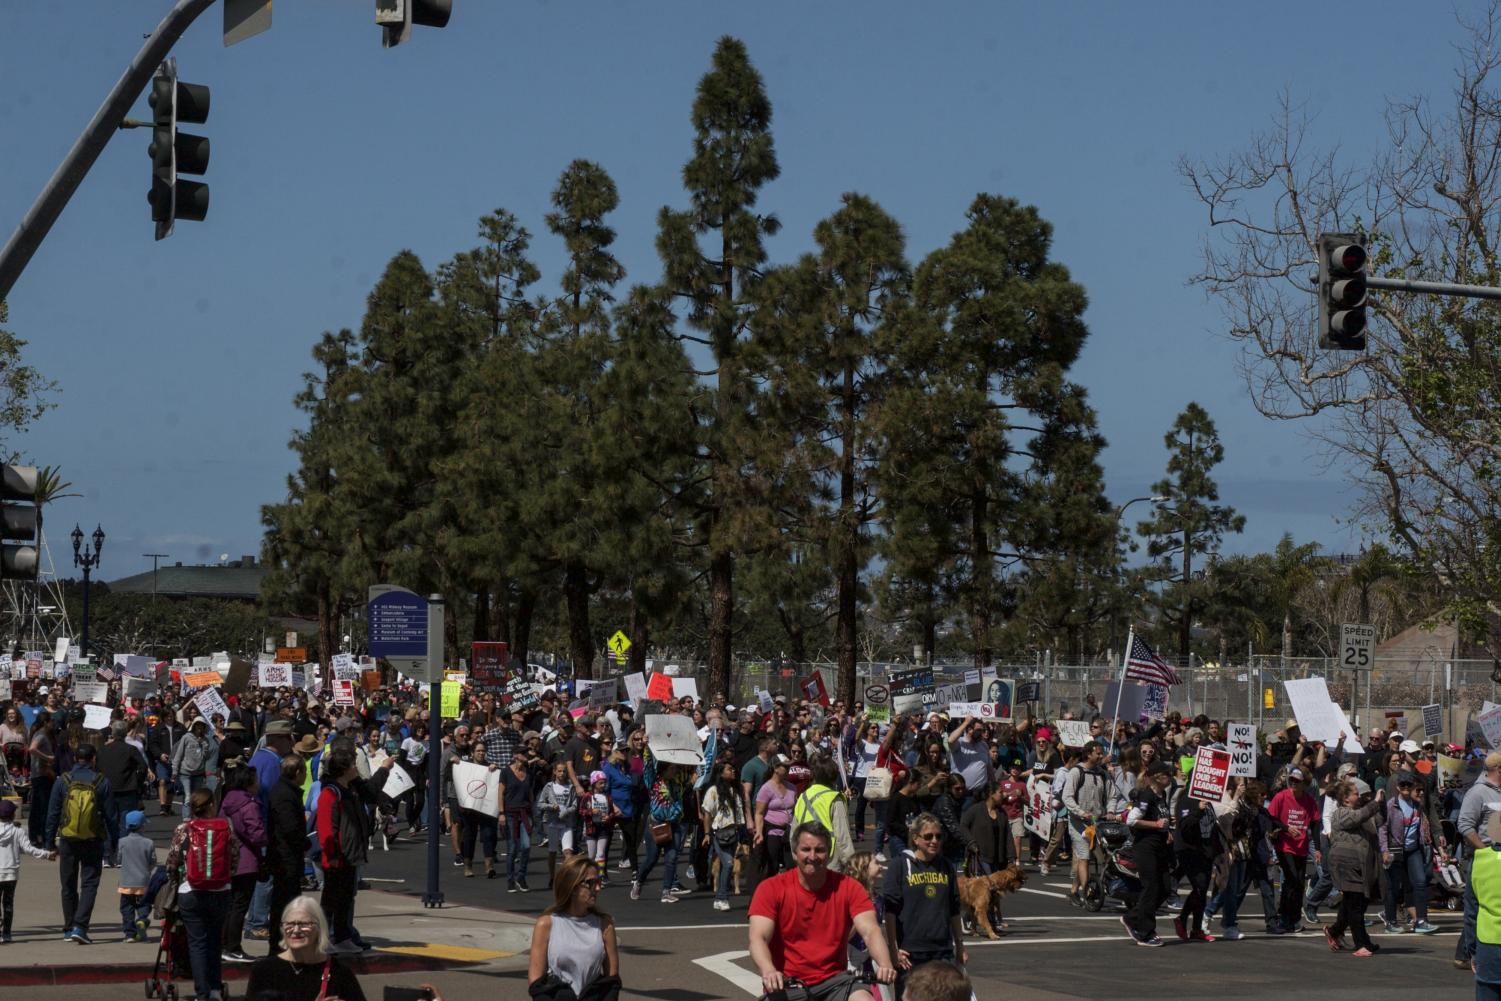 Thousands+attended+the+March+for+Our+Lives+San+Diego+on+March+24+to+demand+gun+legislation+reform.+By+Shaylyn+Martos%2F+City+Times